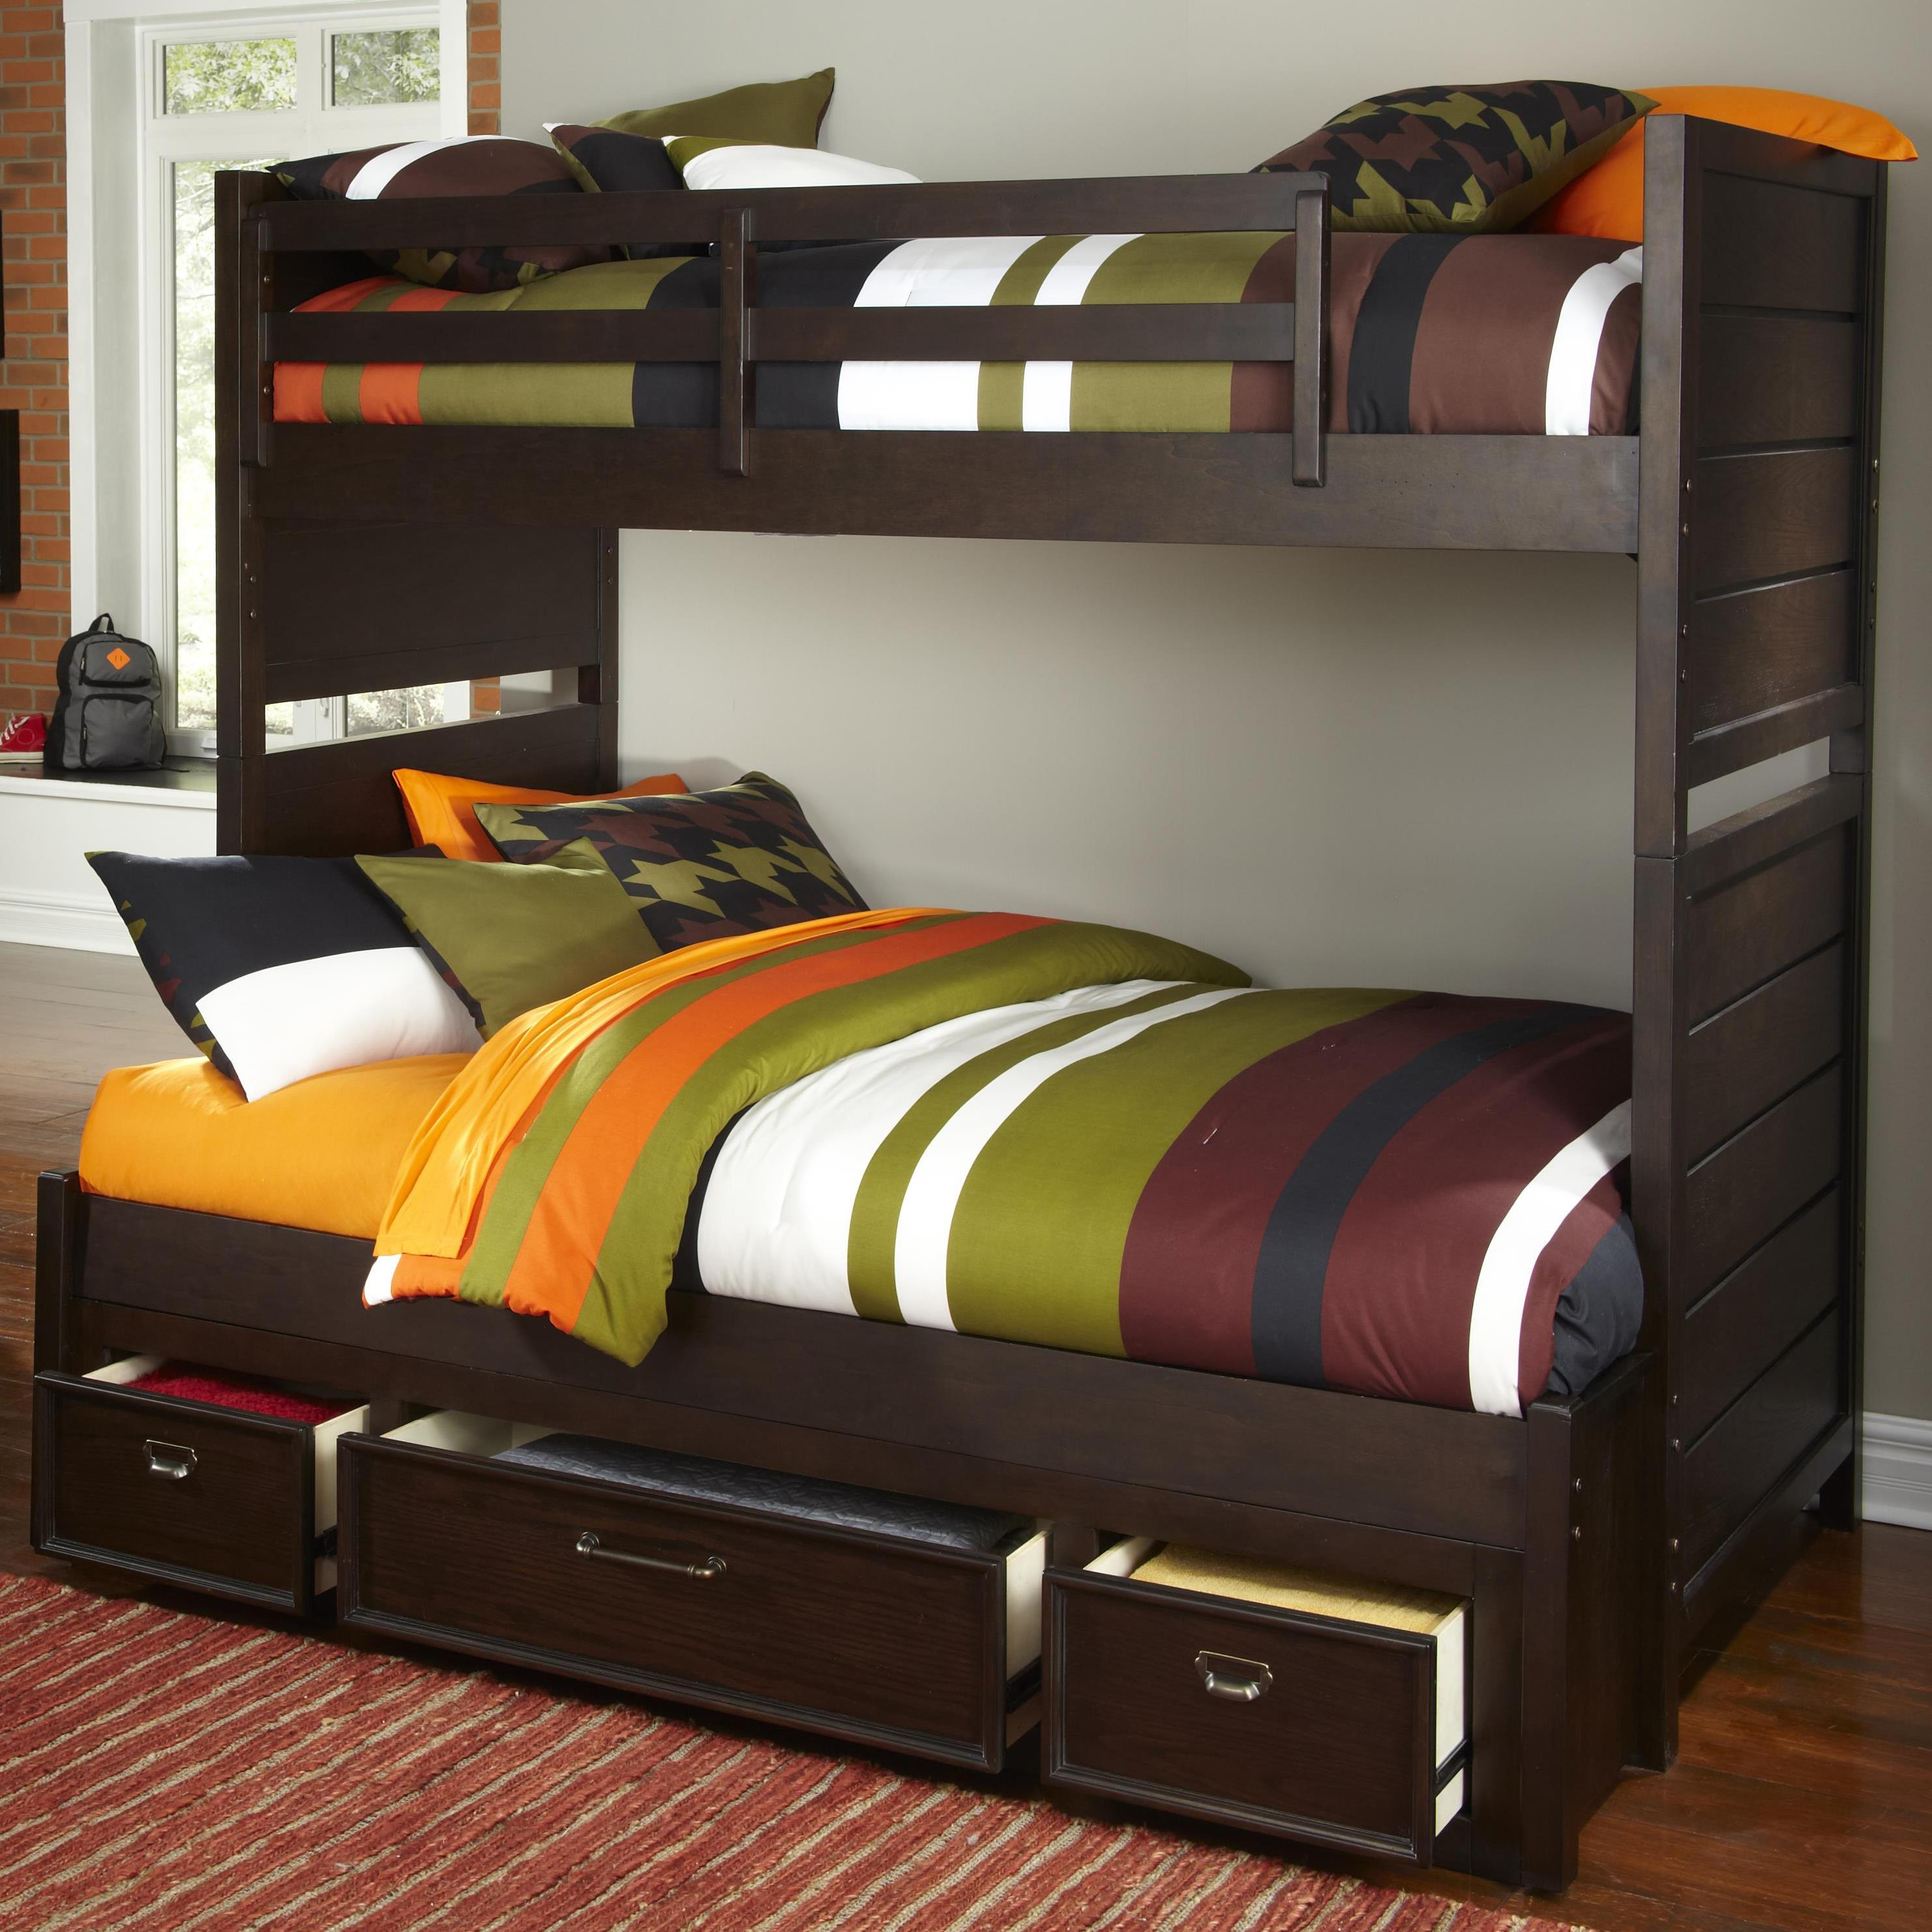 Kidz Gear Mason Twin Over Full Storage Bunk Bed - Item Number: 8872-643+730+731+732+733